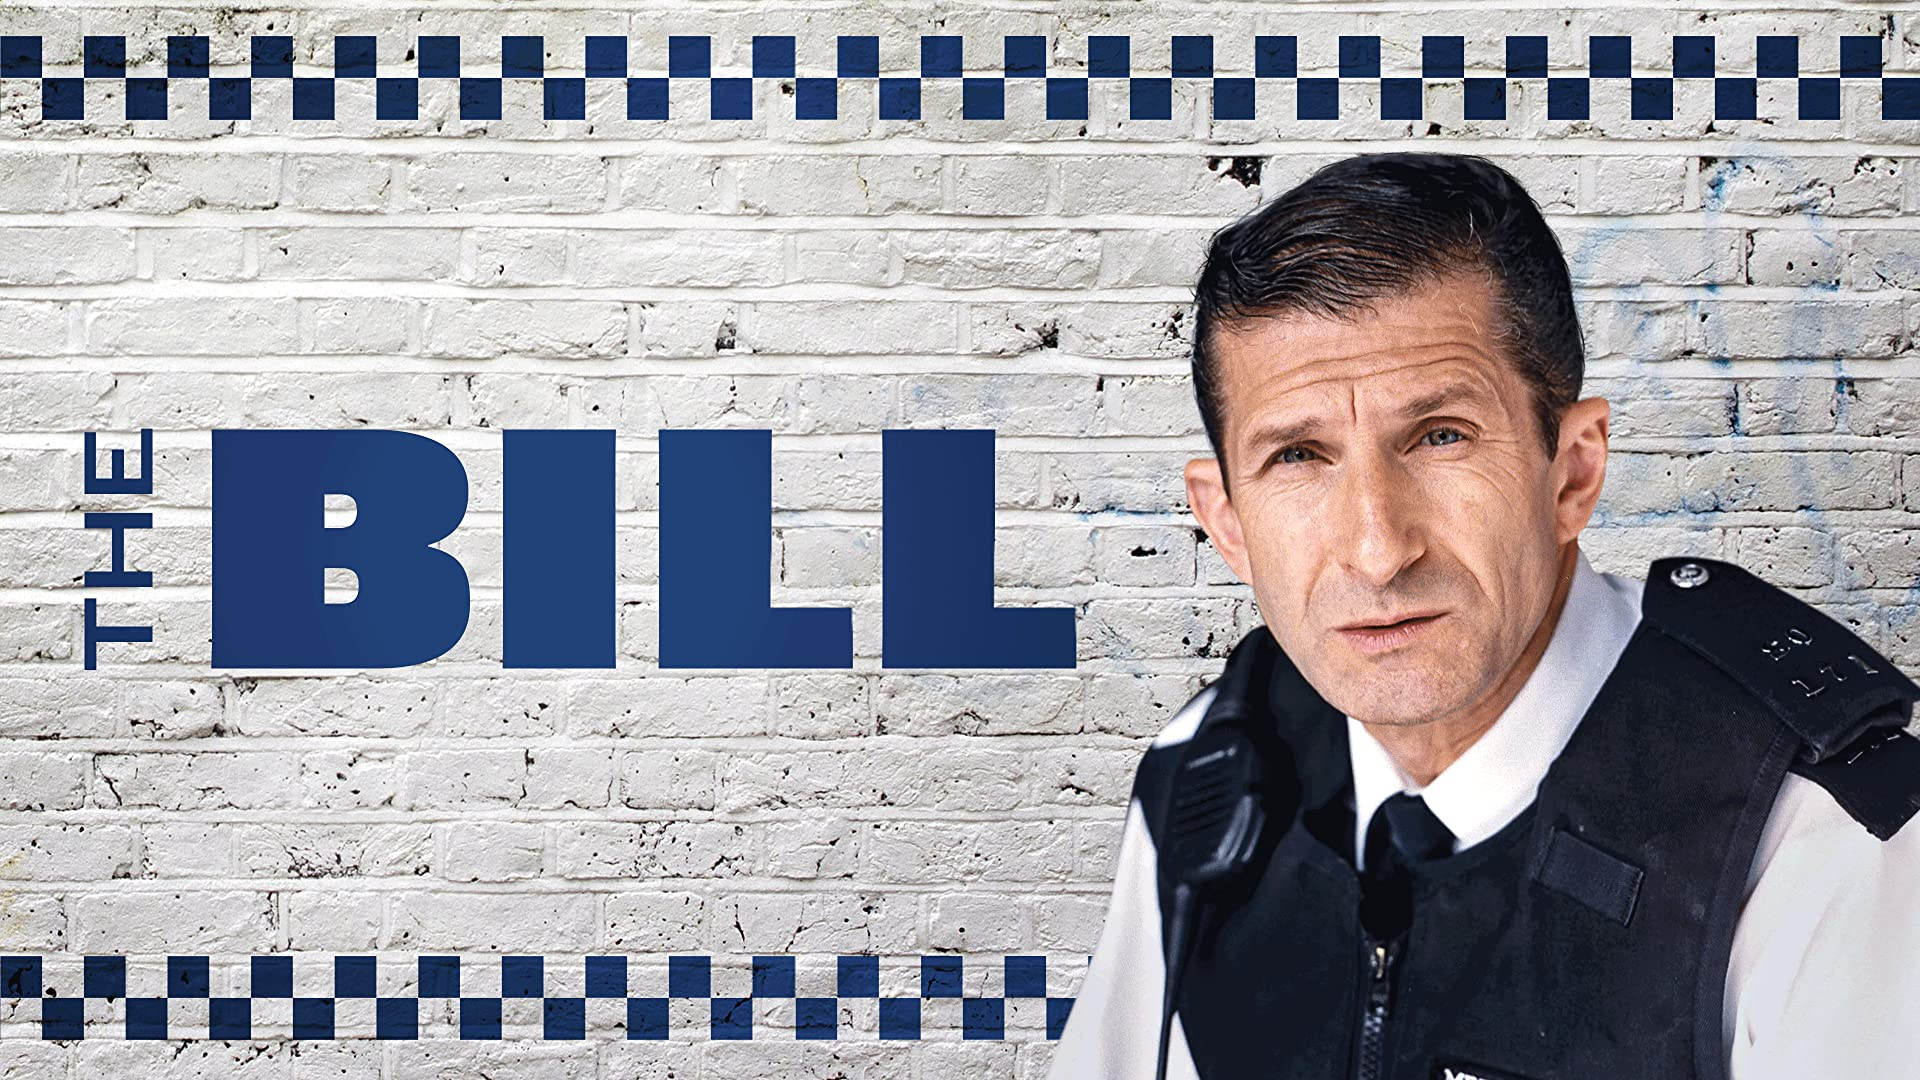 The Bill, Season 25